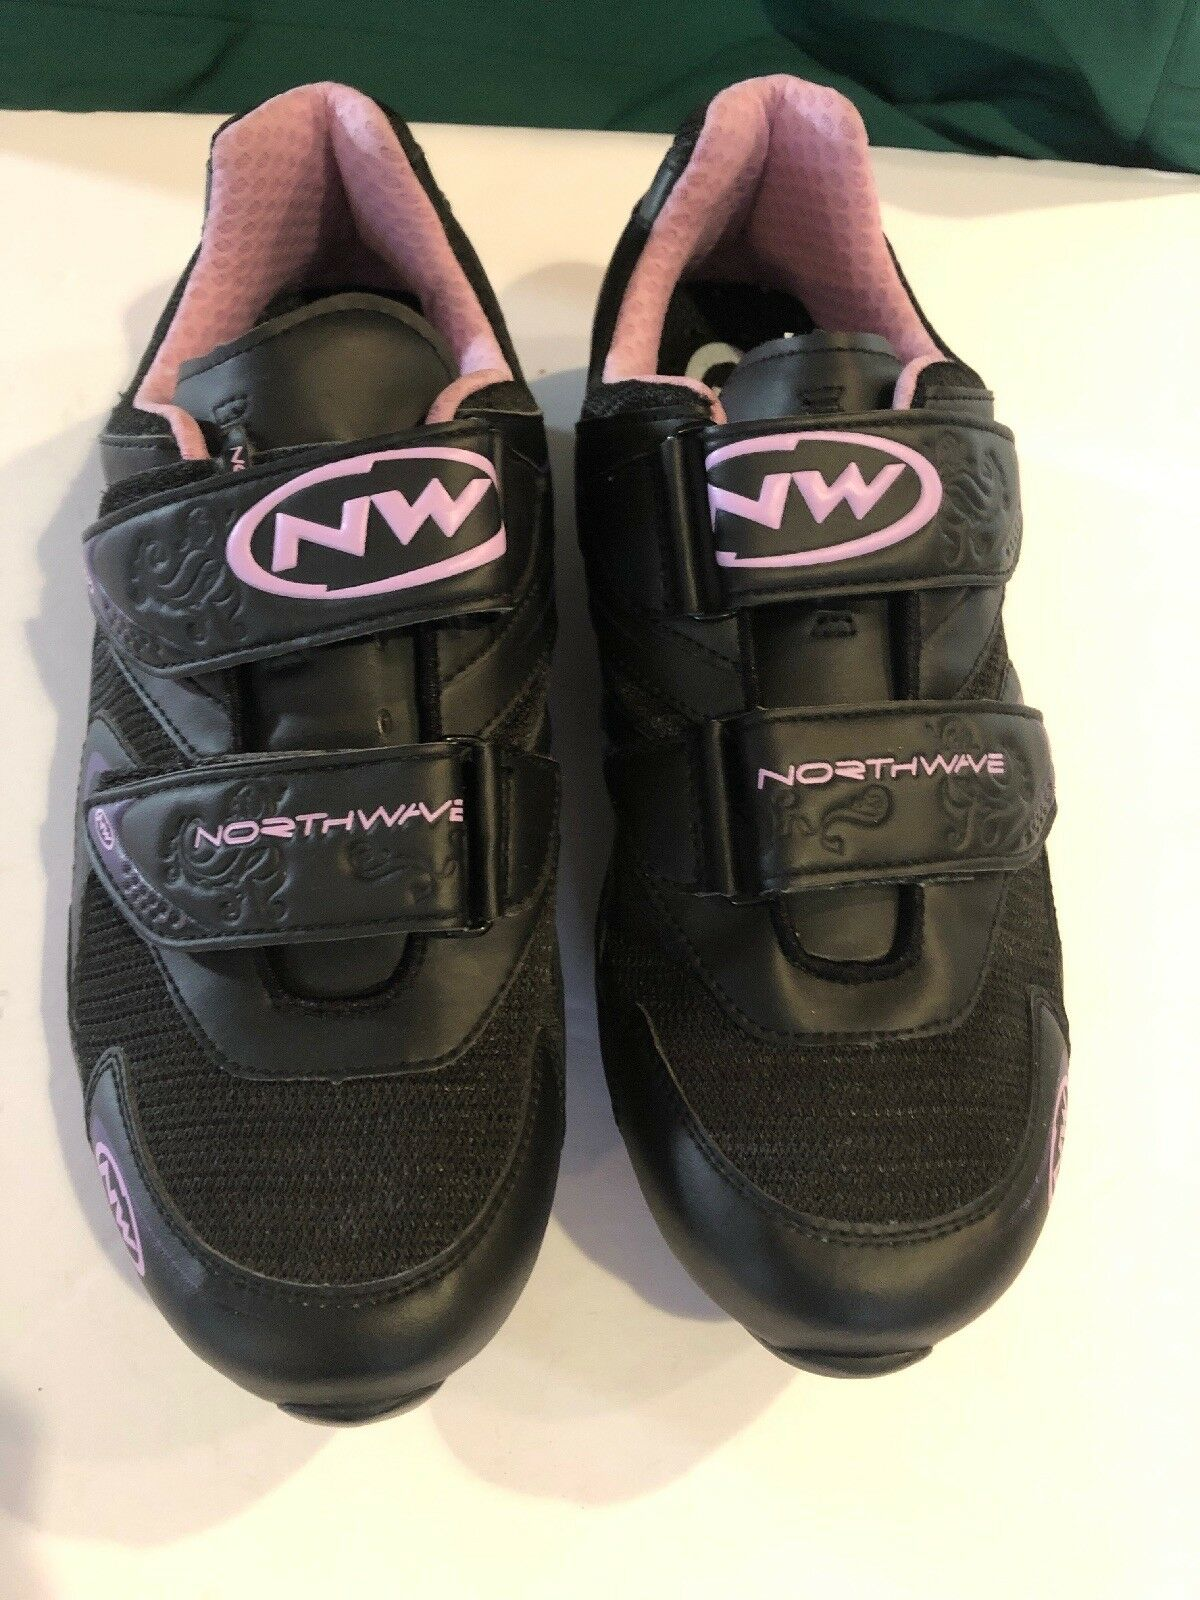 NEW Damenschuhe Cycling Northwave Cycling Damenschuhe Schuhes.  Heel Retention System. 777686